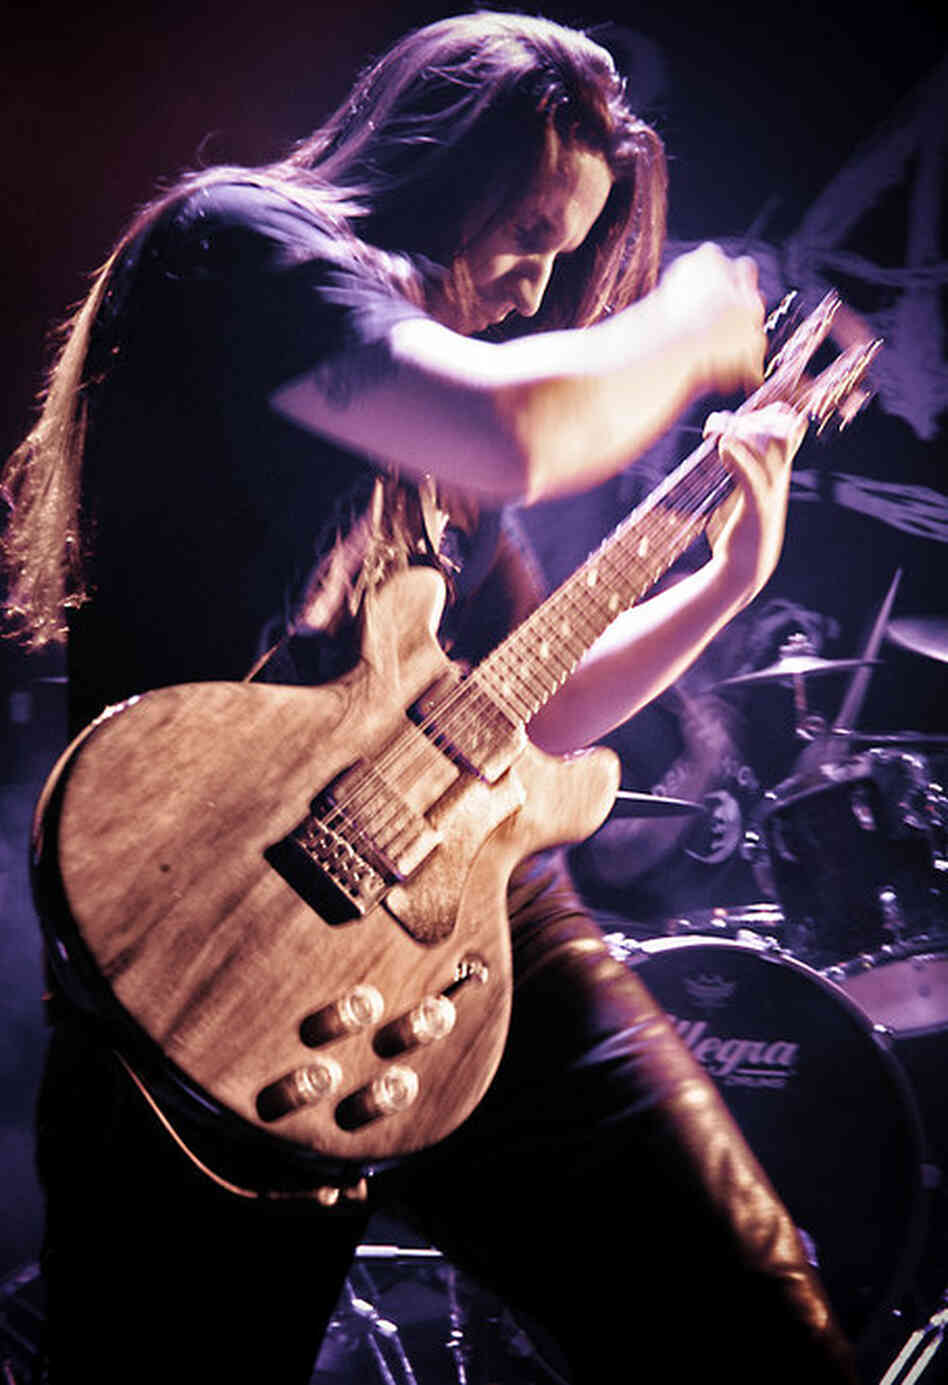 Agalloch performing live at Le Poisson Rouge in New York City, March 22, 2011.